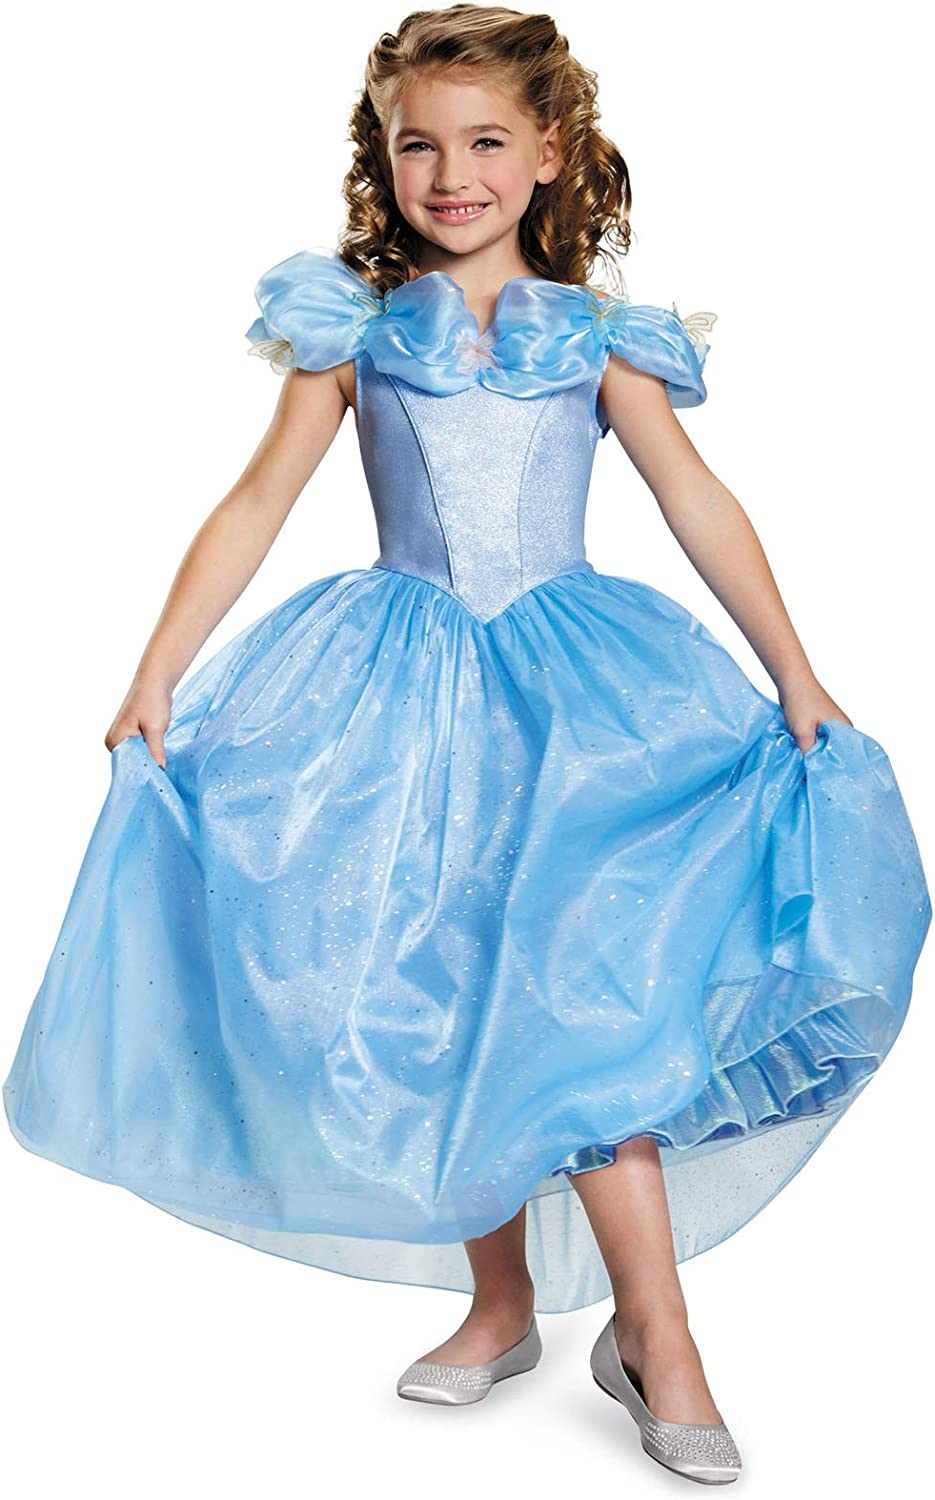 Disguise Cinderella Movie Prestige Costume, XSmall (3T4T)